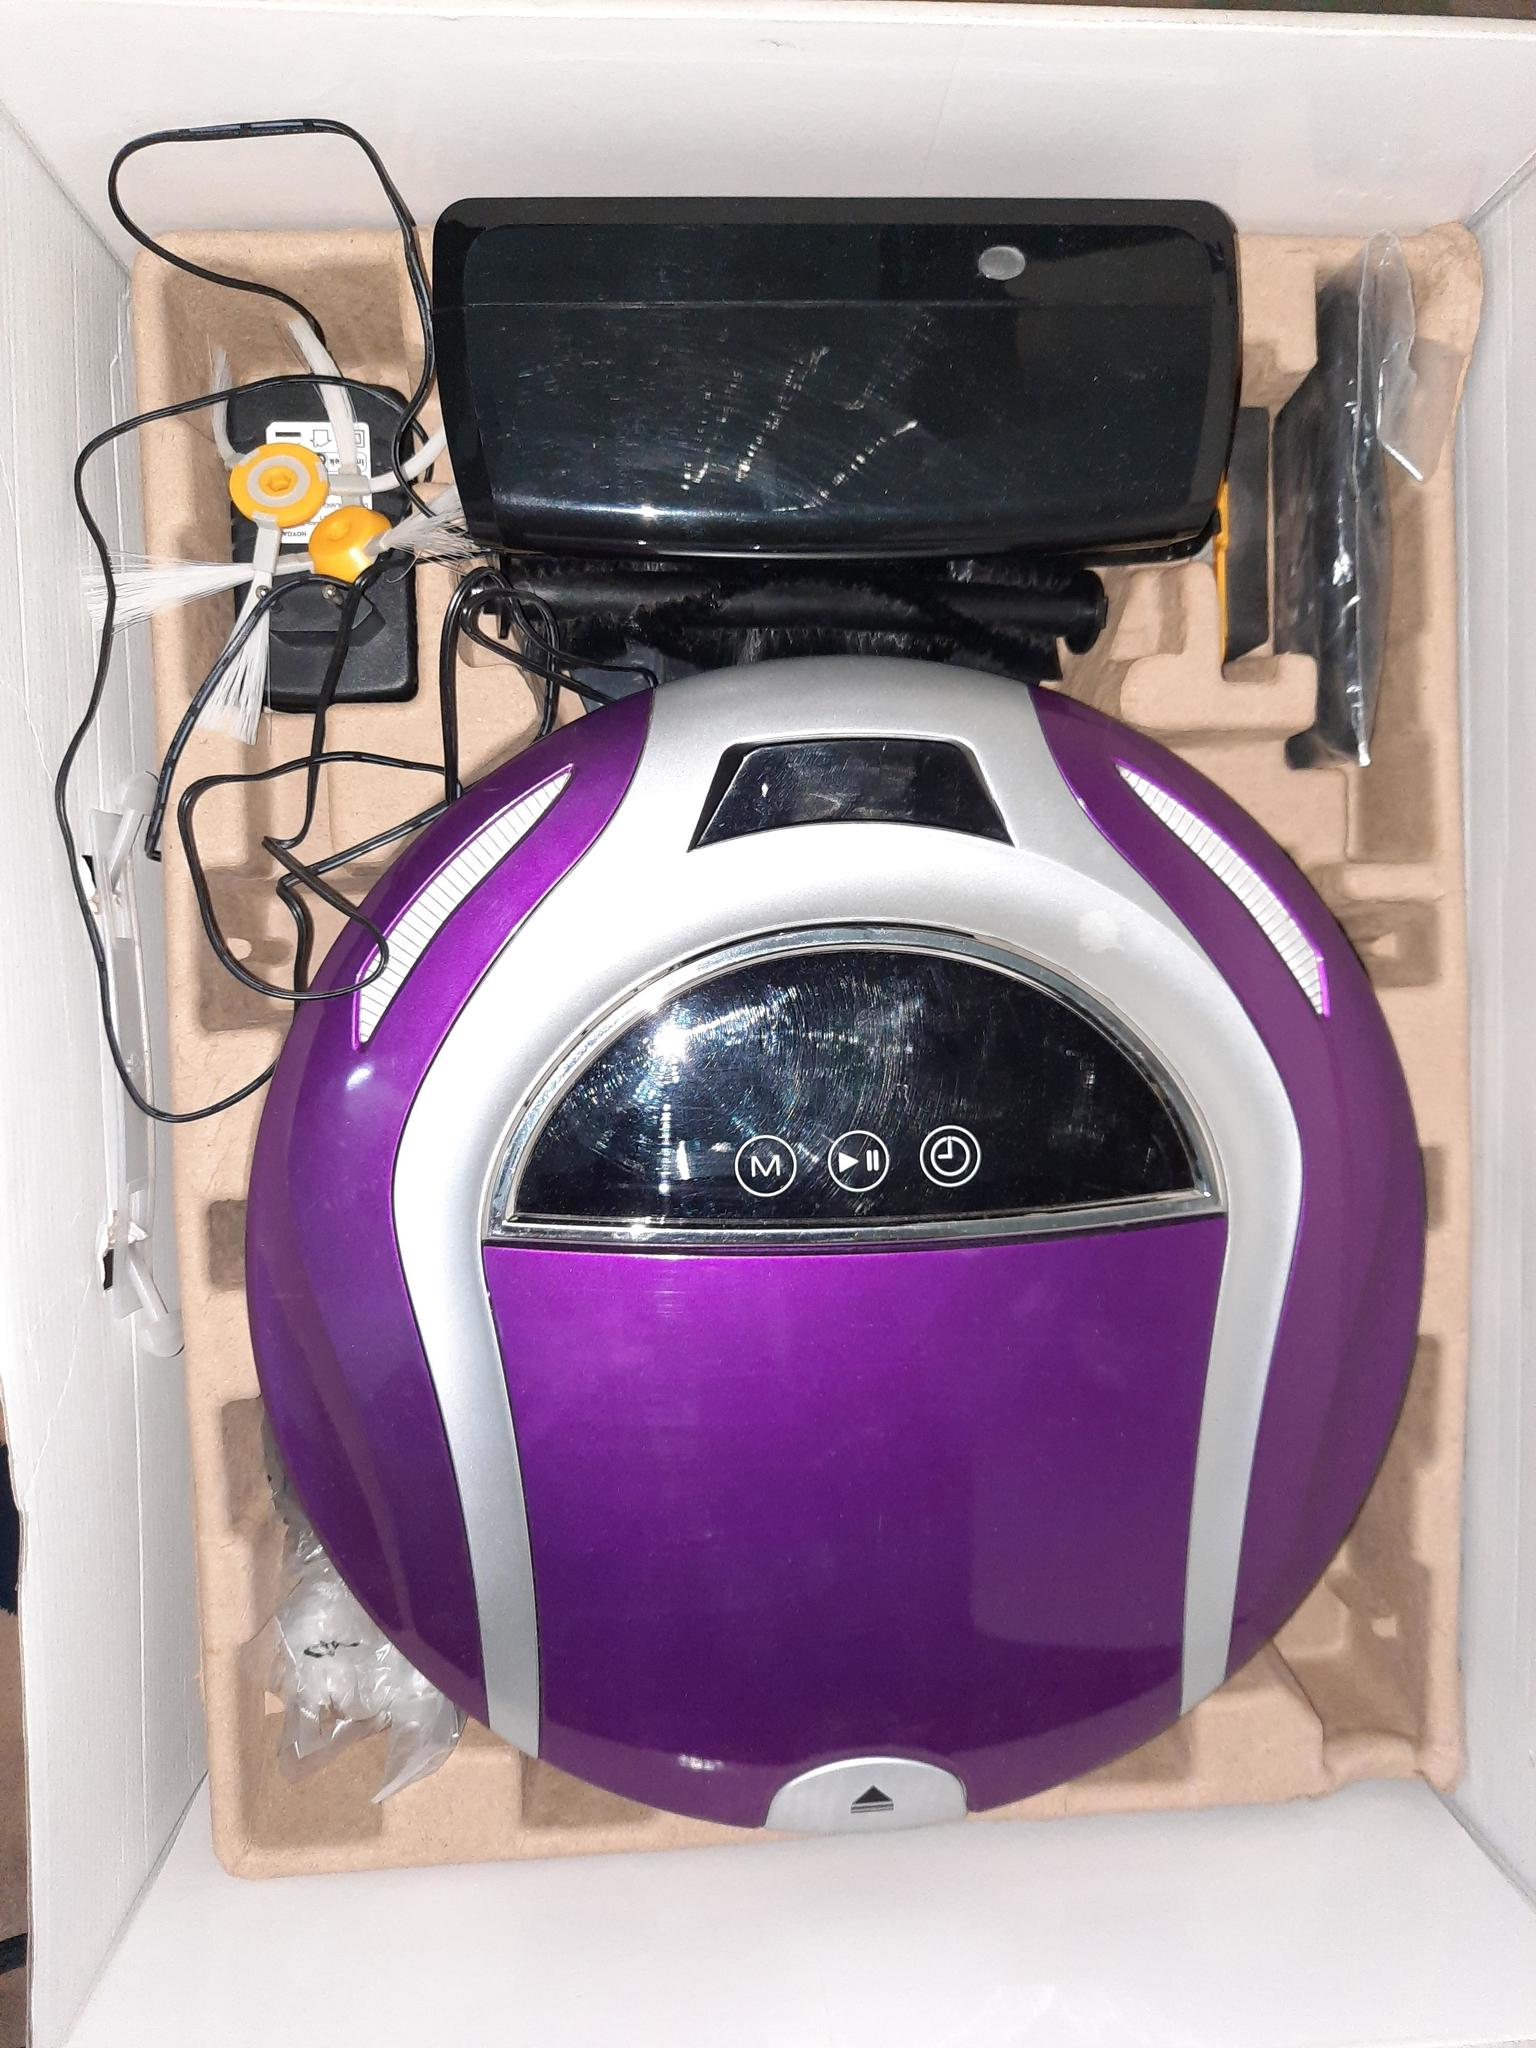 RobotRobot vacuum cleaner with remote c vacuum cle